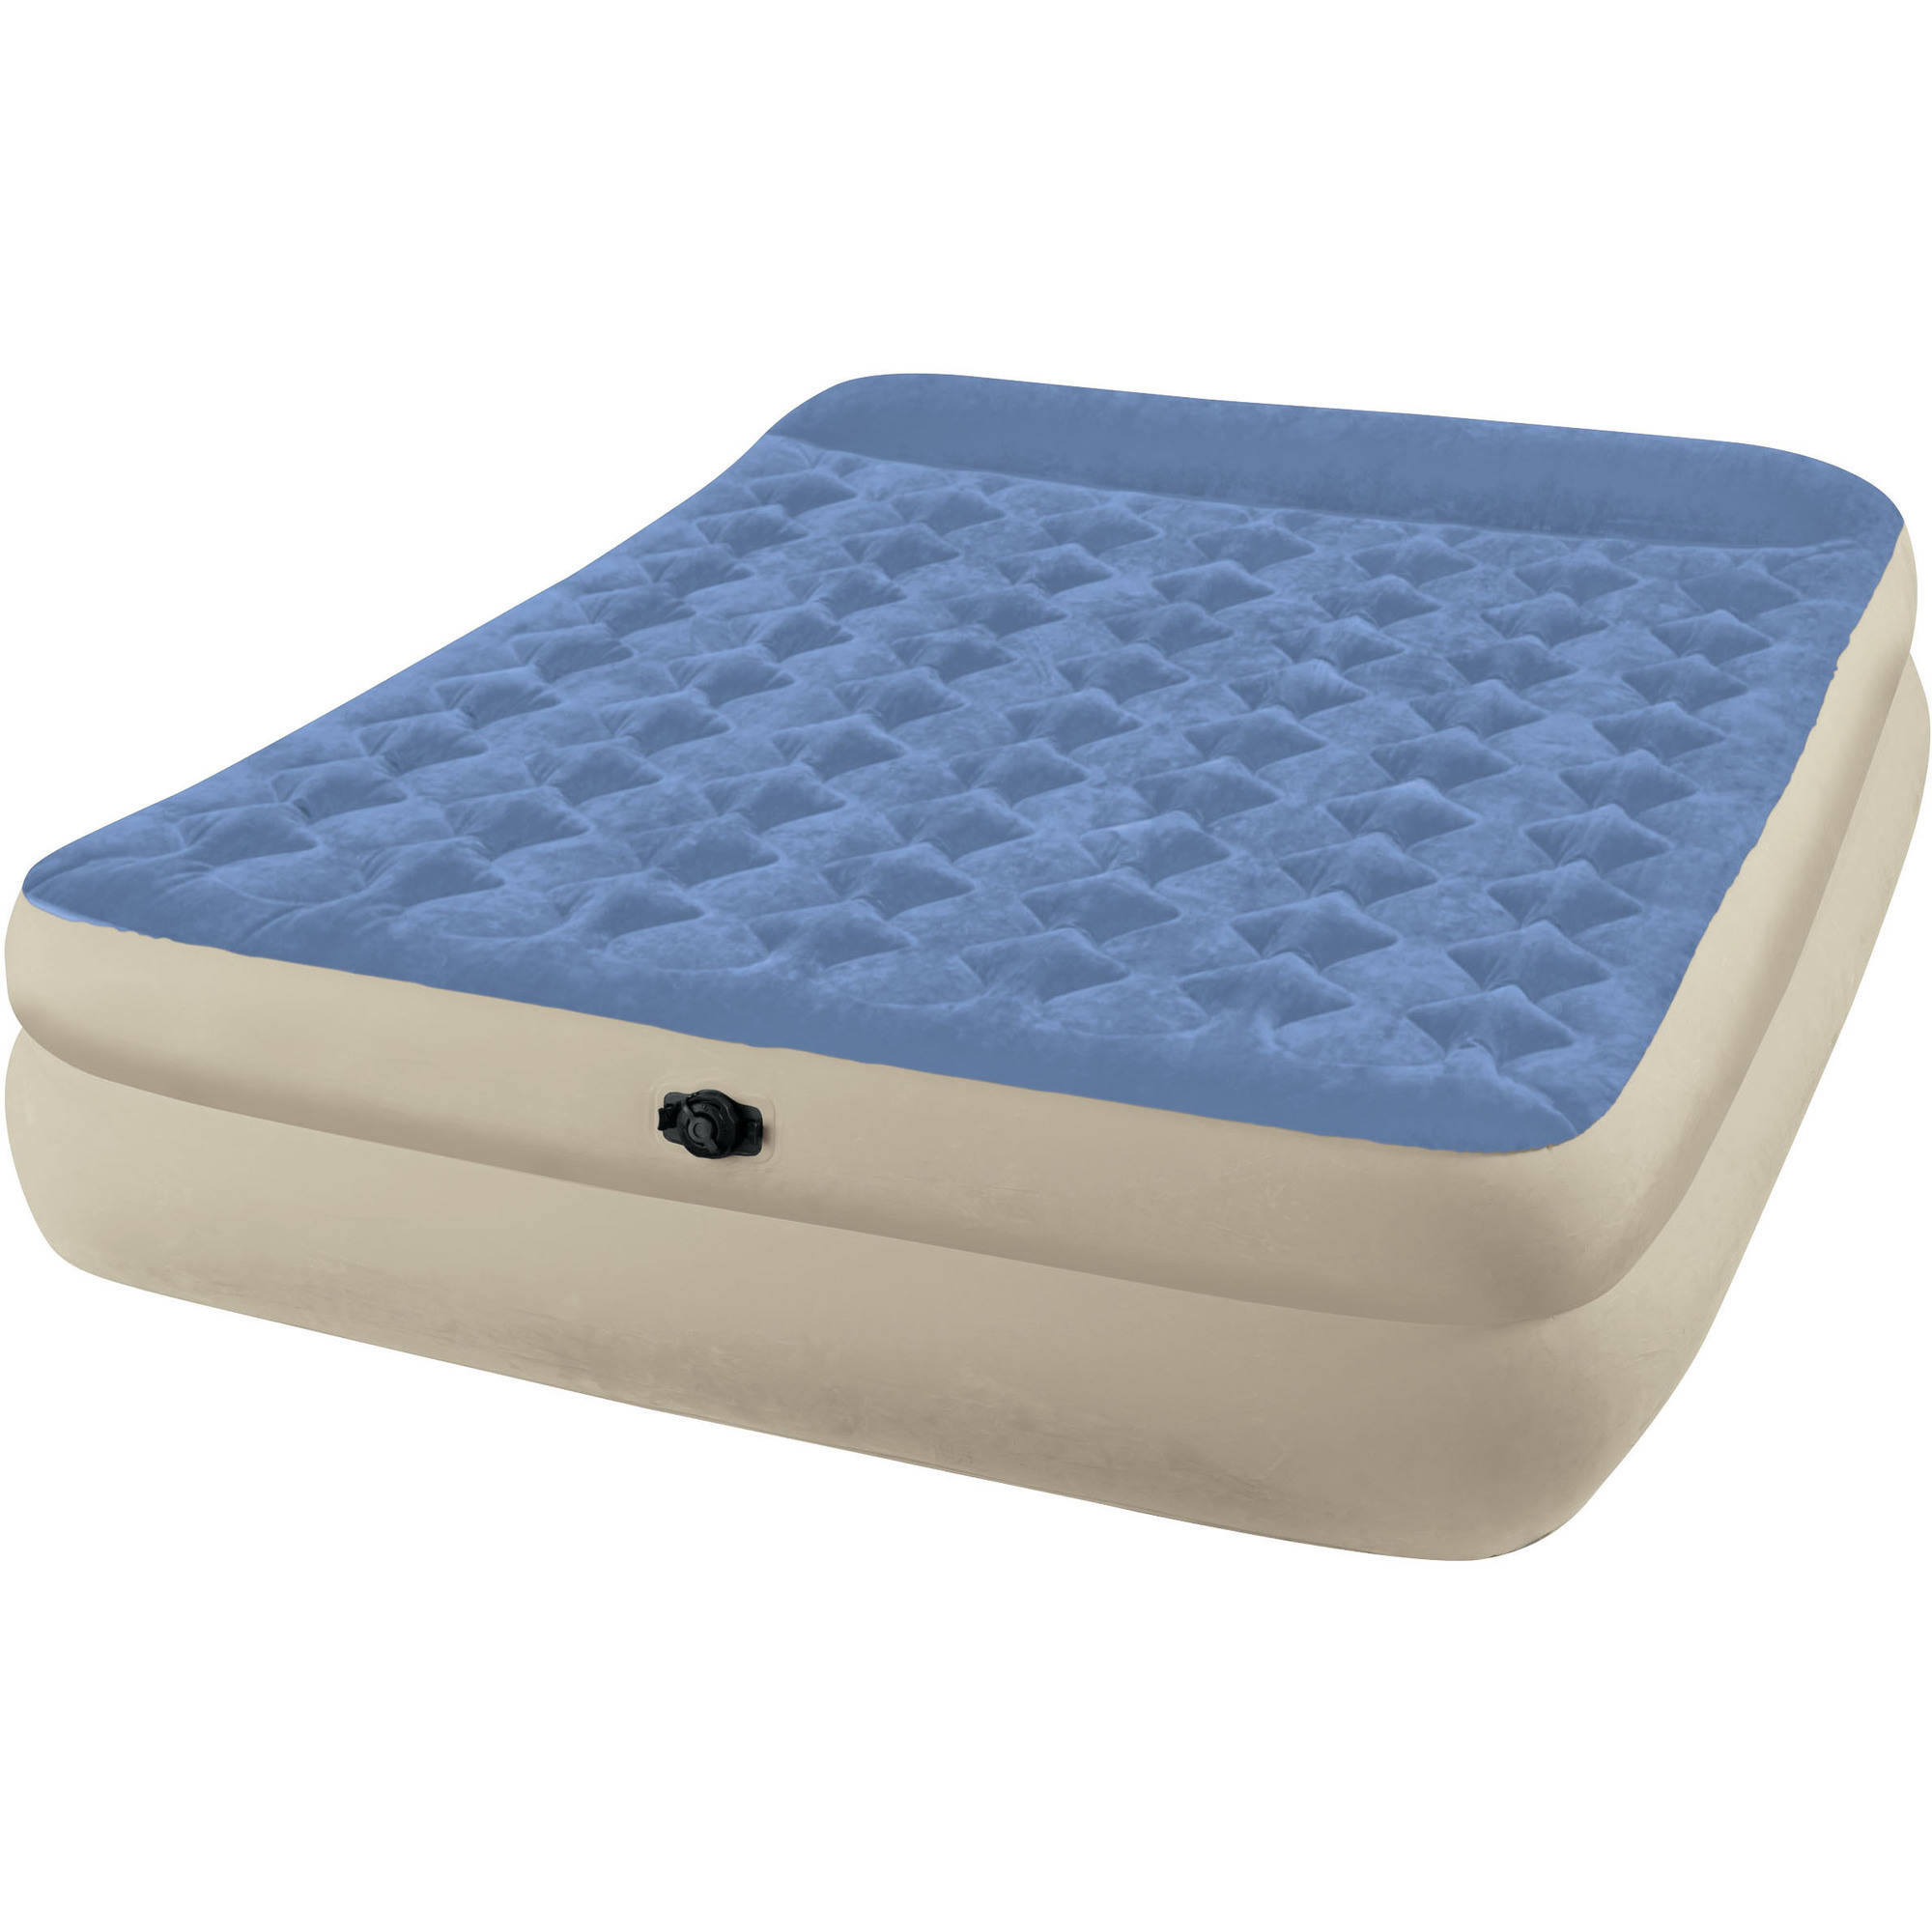 "Review Intex Queen 18"" Raised Pillow Rest Airbed Mattress Review"